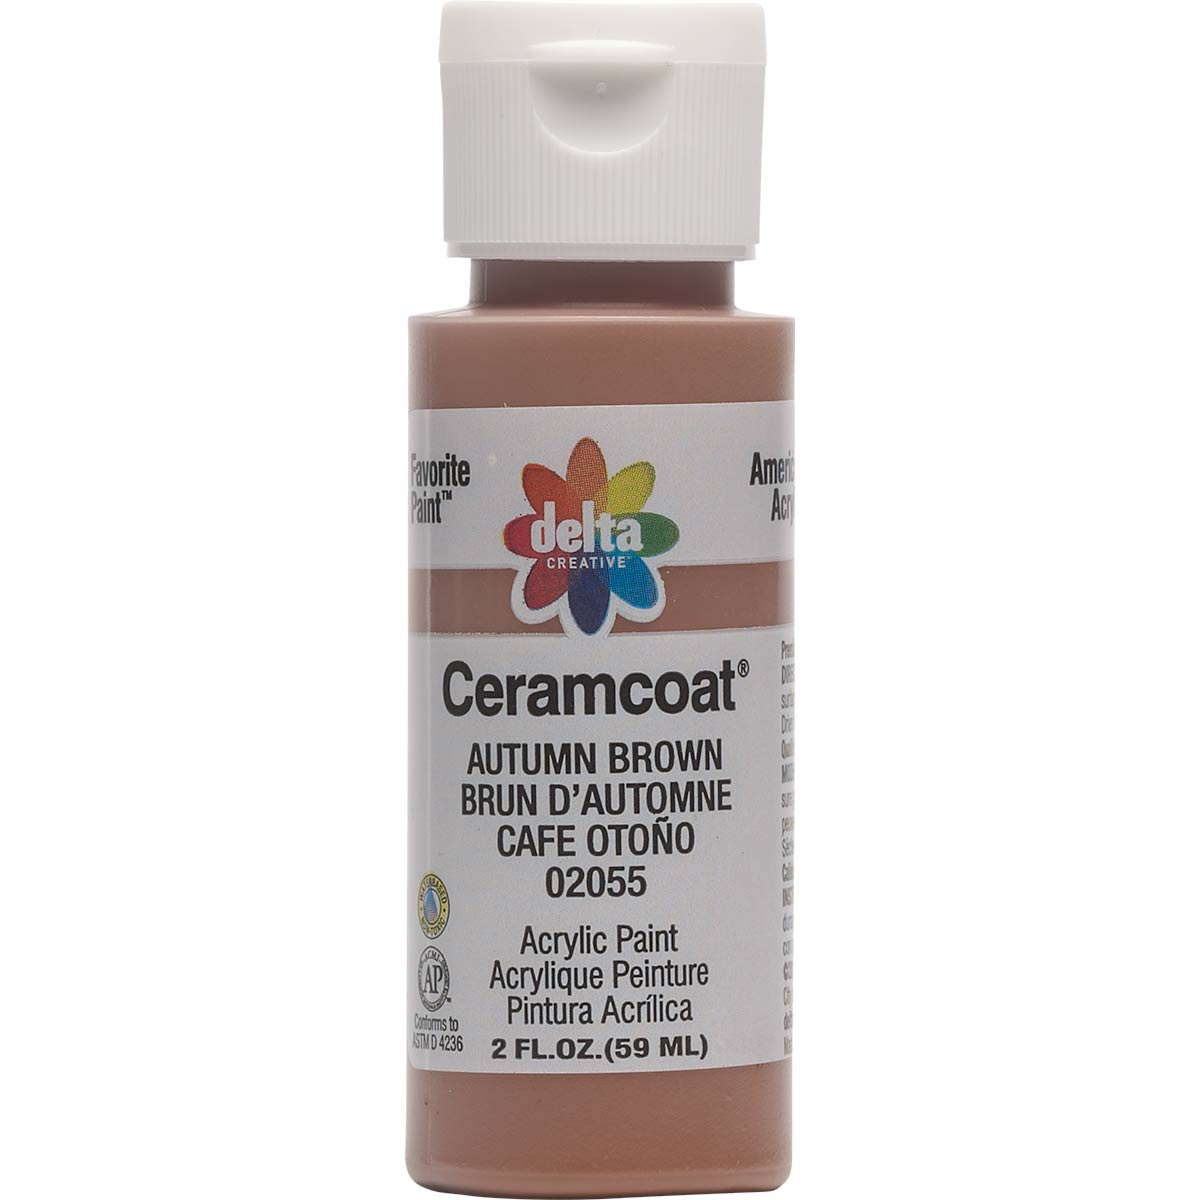 Delta Ceramcoat ® Acrylic Paint - Autumn Brown, 2 oz. - 020550202W